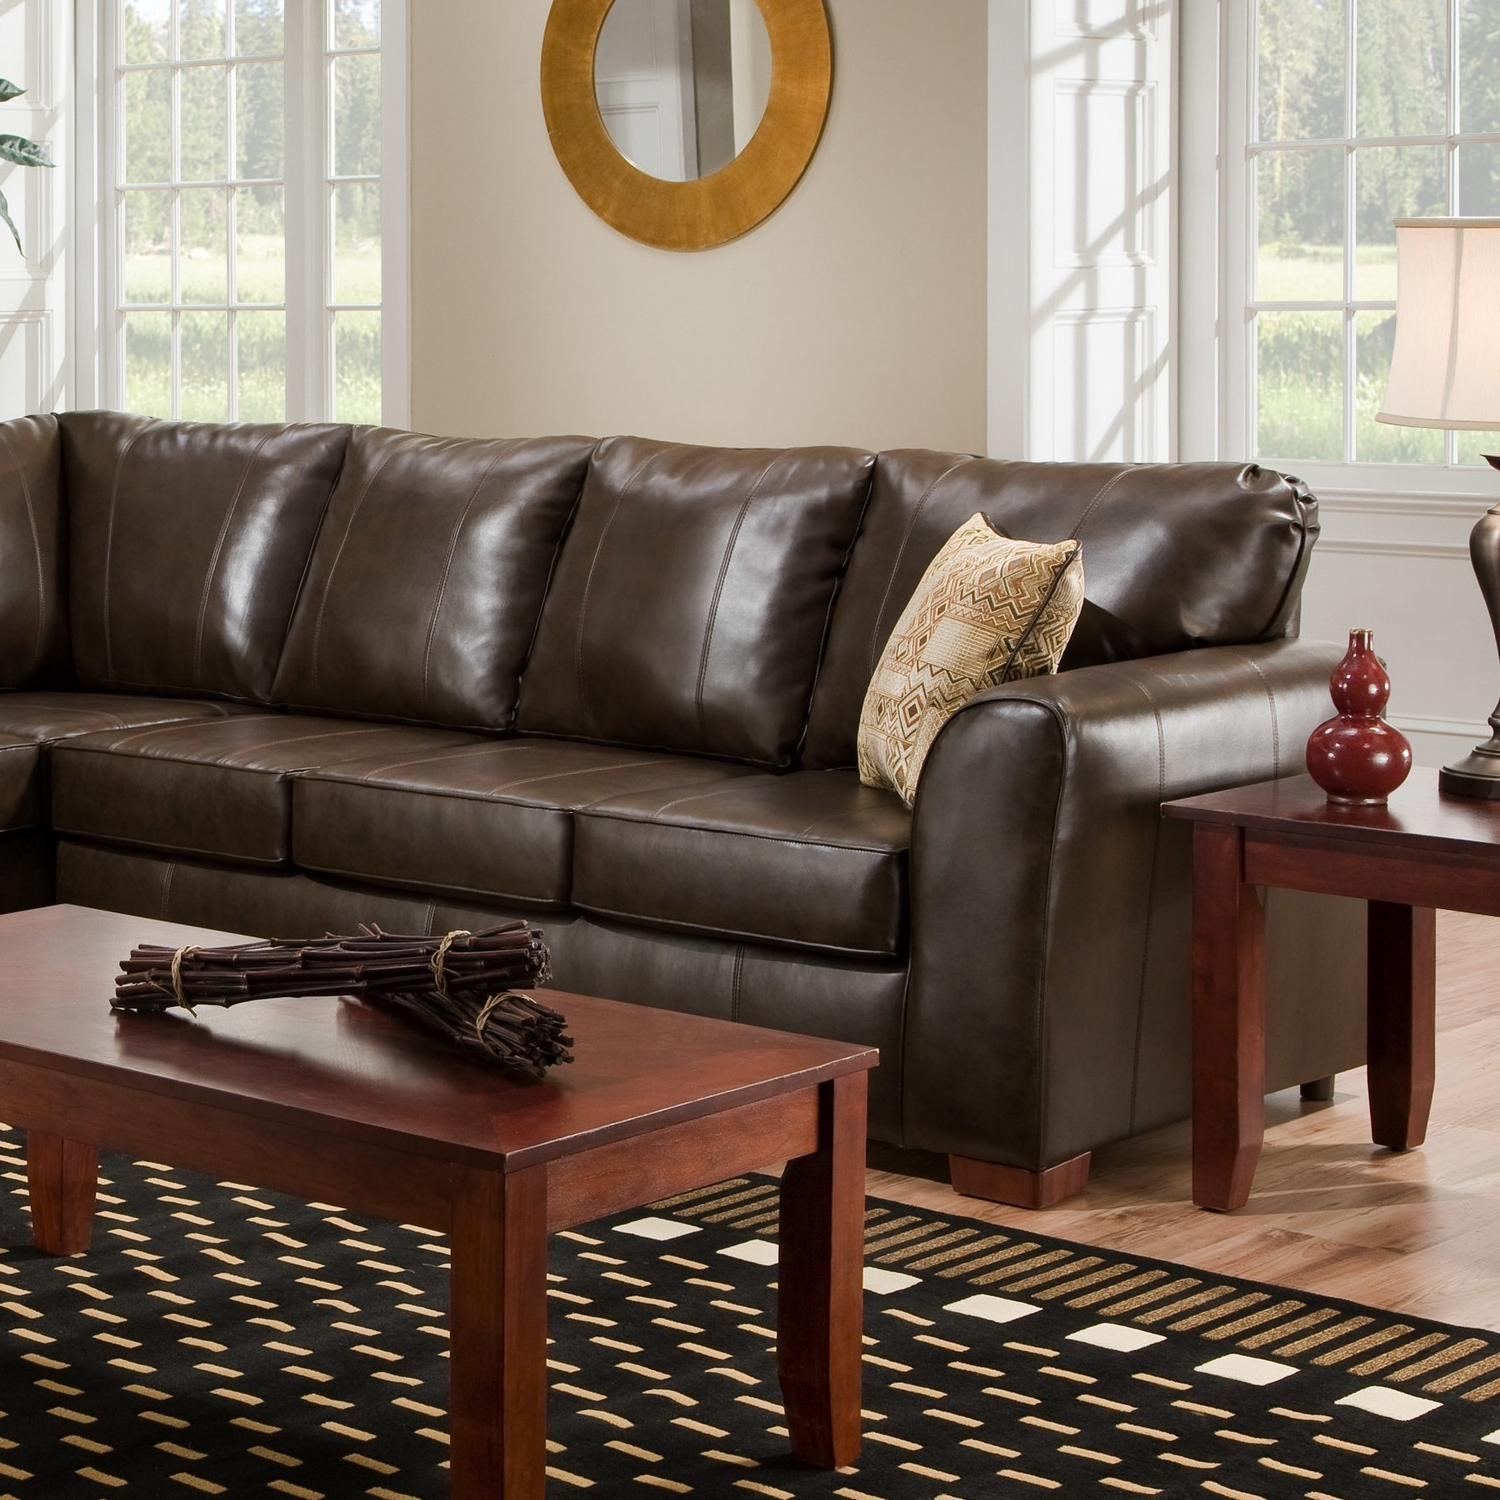 Most Popular Houzz Sectional Sofas Regarding Bedroom: Houzz Living Rooms With Cheap Sectional Couches (View 14 of 20)